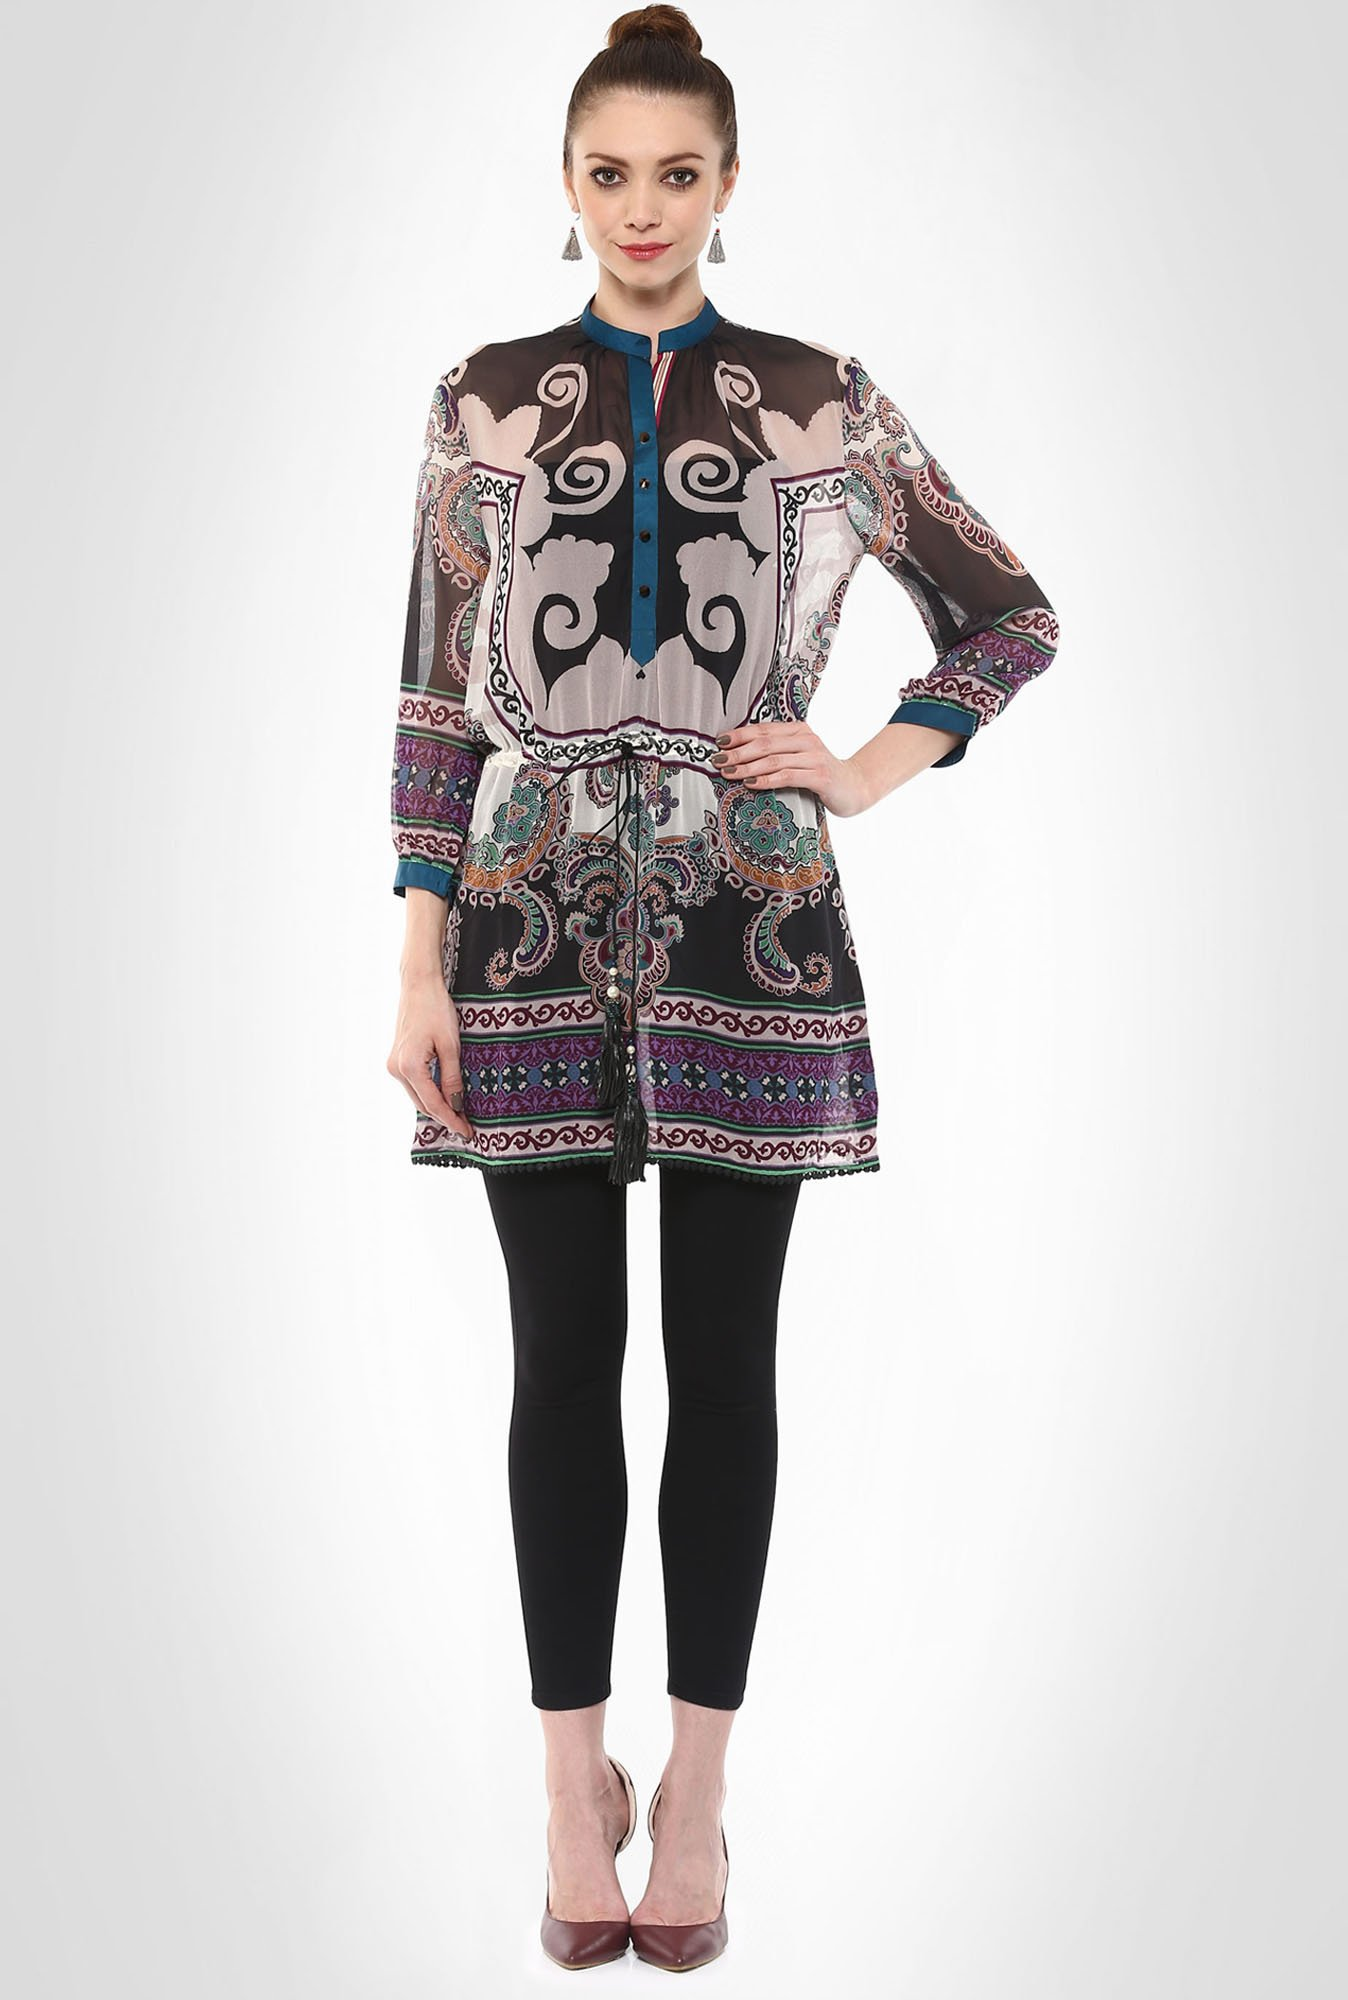 Rajdeep Designer Wear Popover Printed Tunic By Kimaya